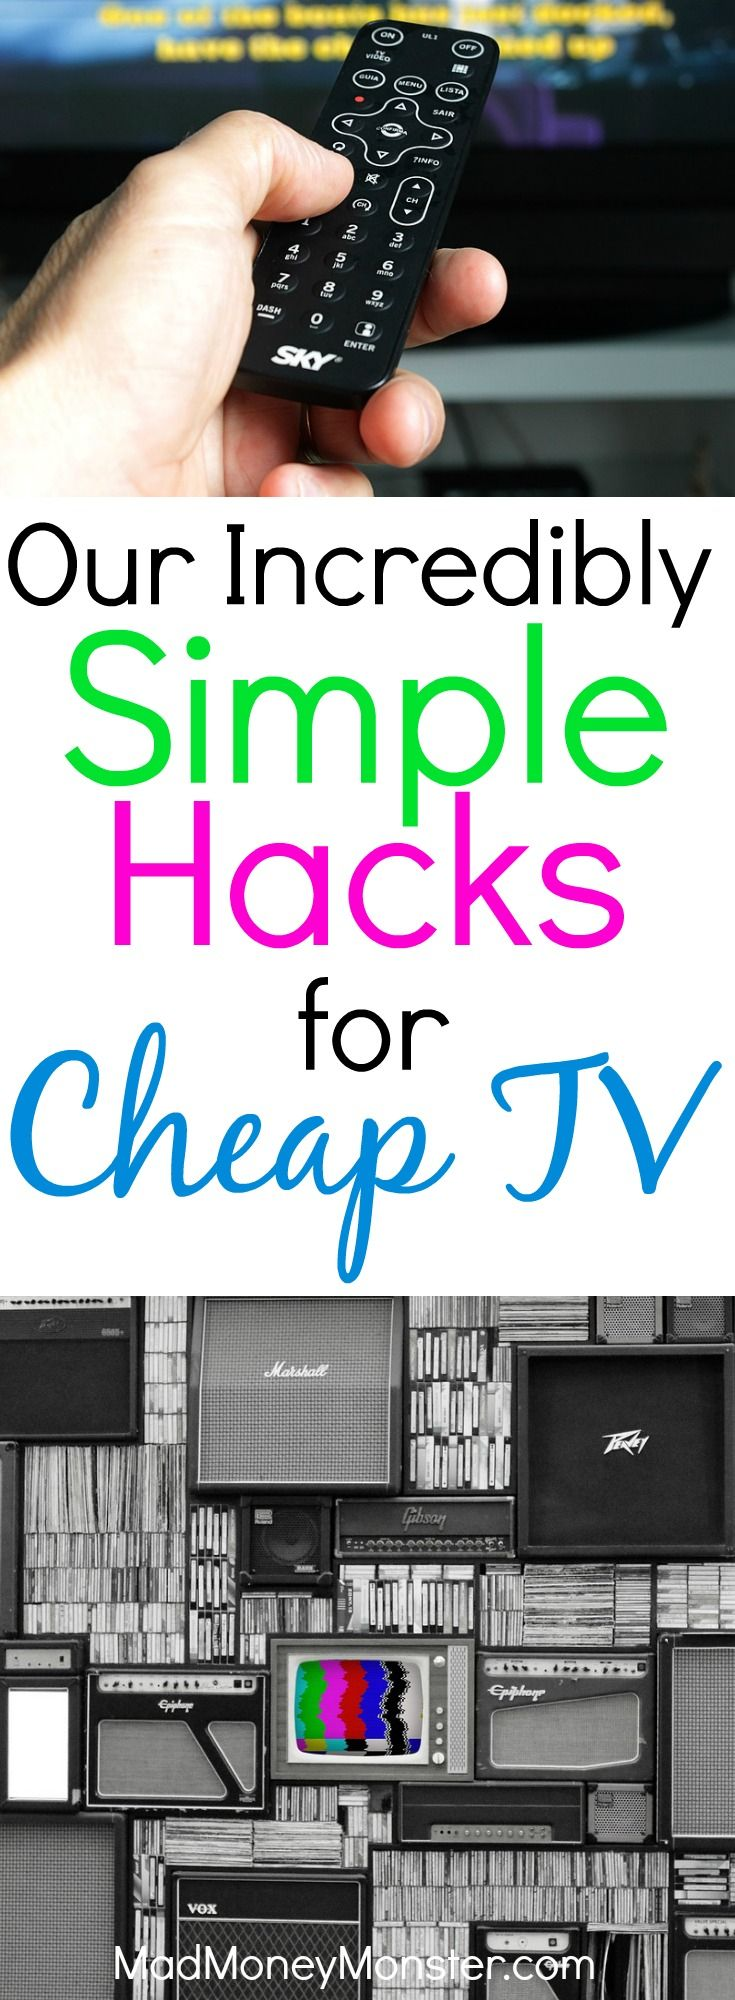 The 25 best tv streaming ideas on pinterest tv streaming sites our incredibly simple hack for cheap tv buycottarizona